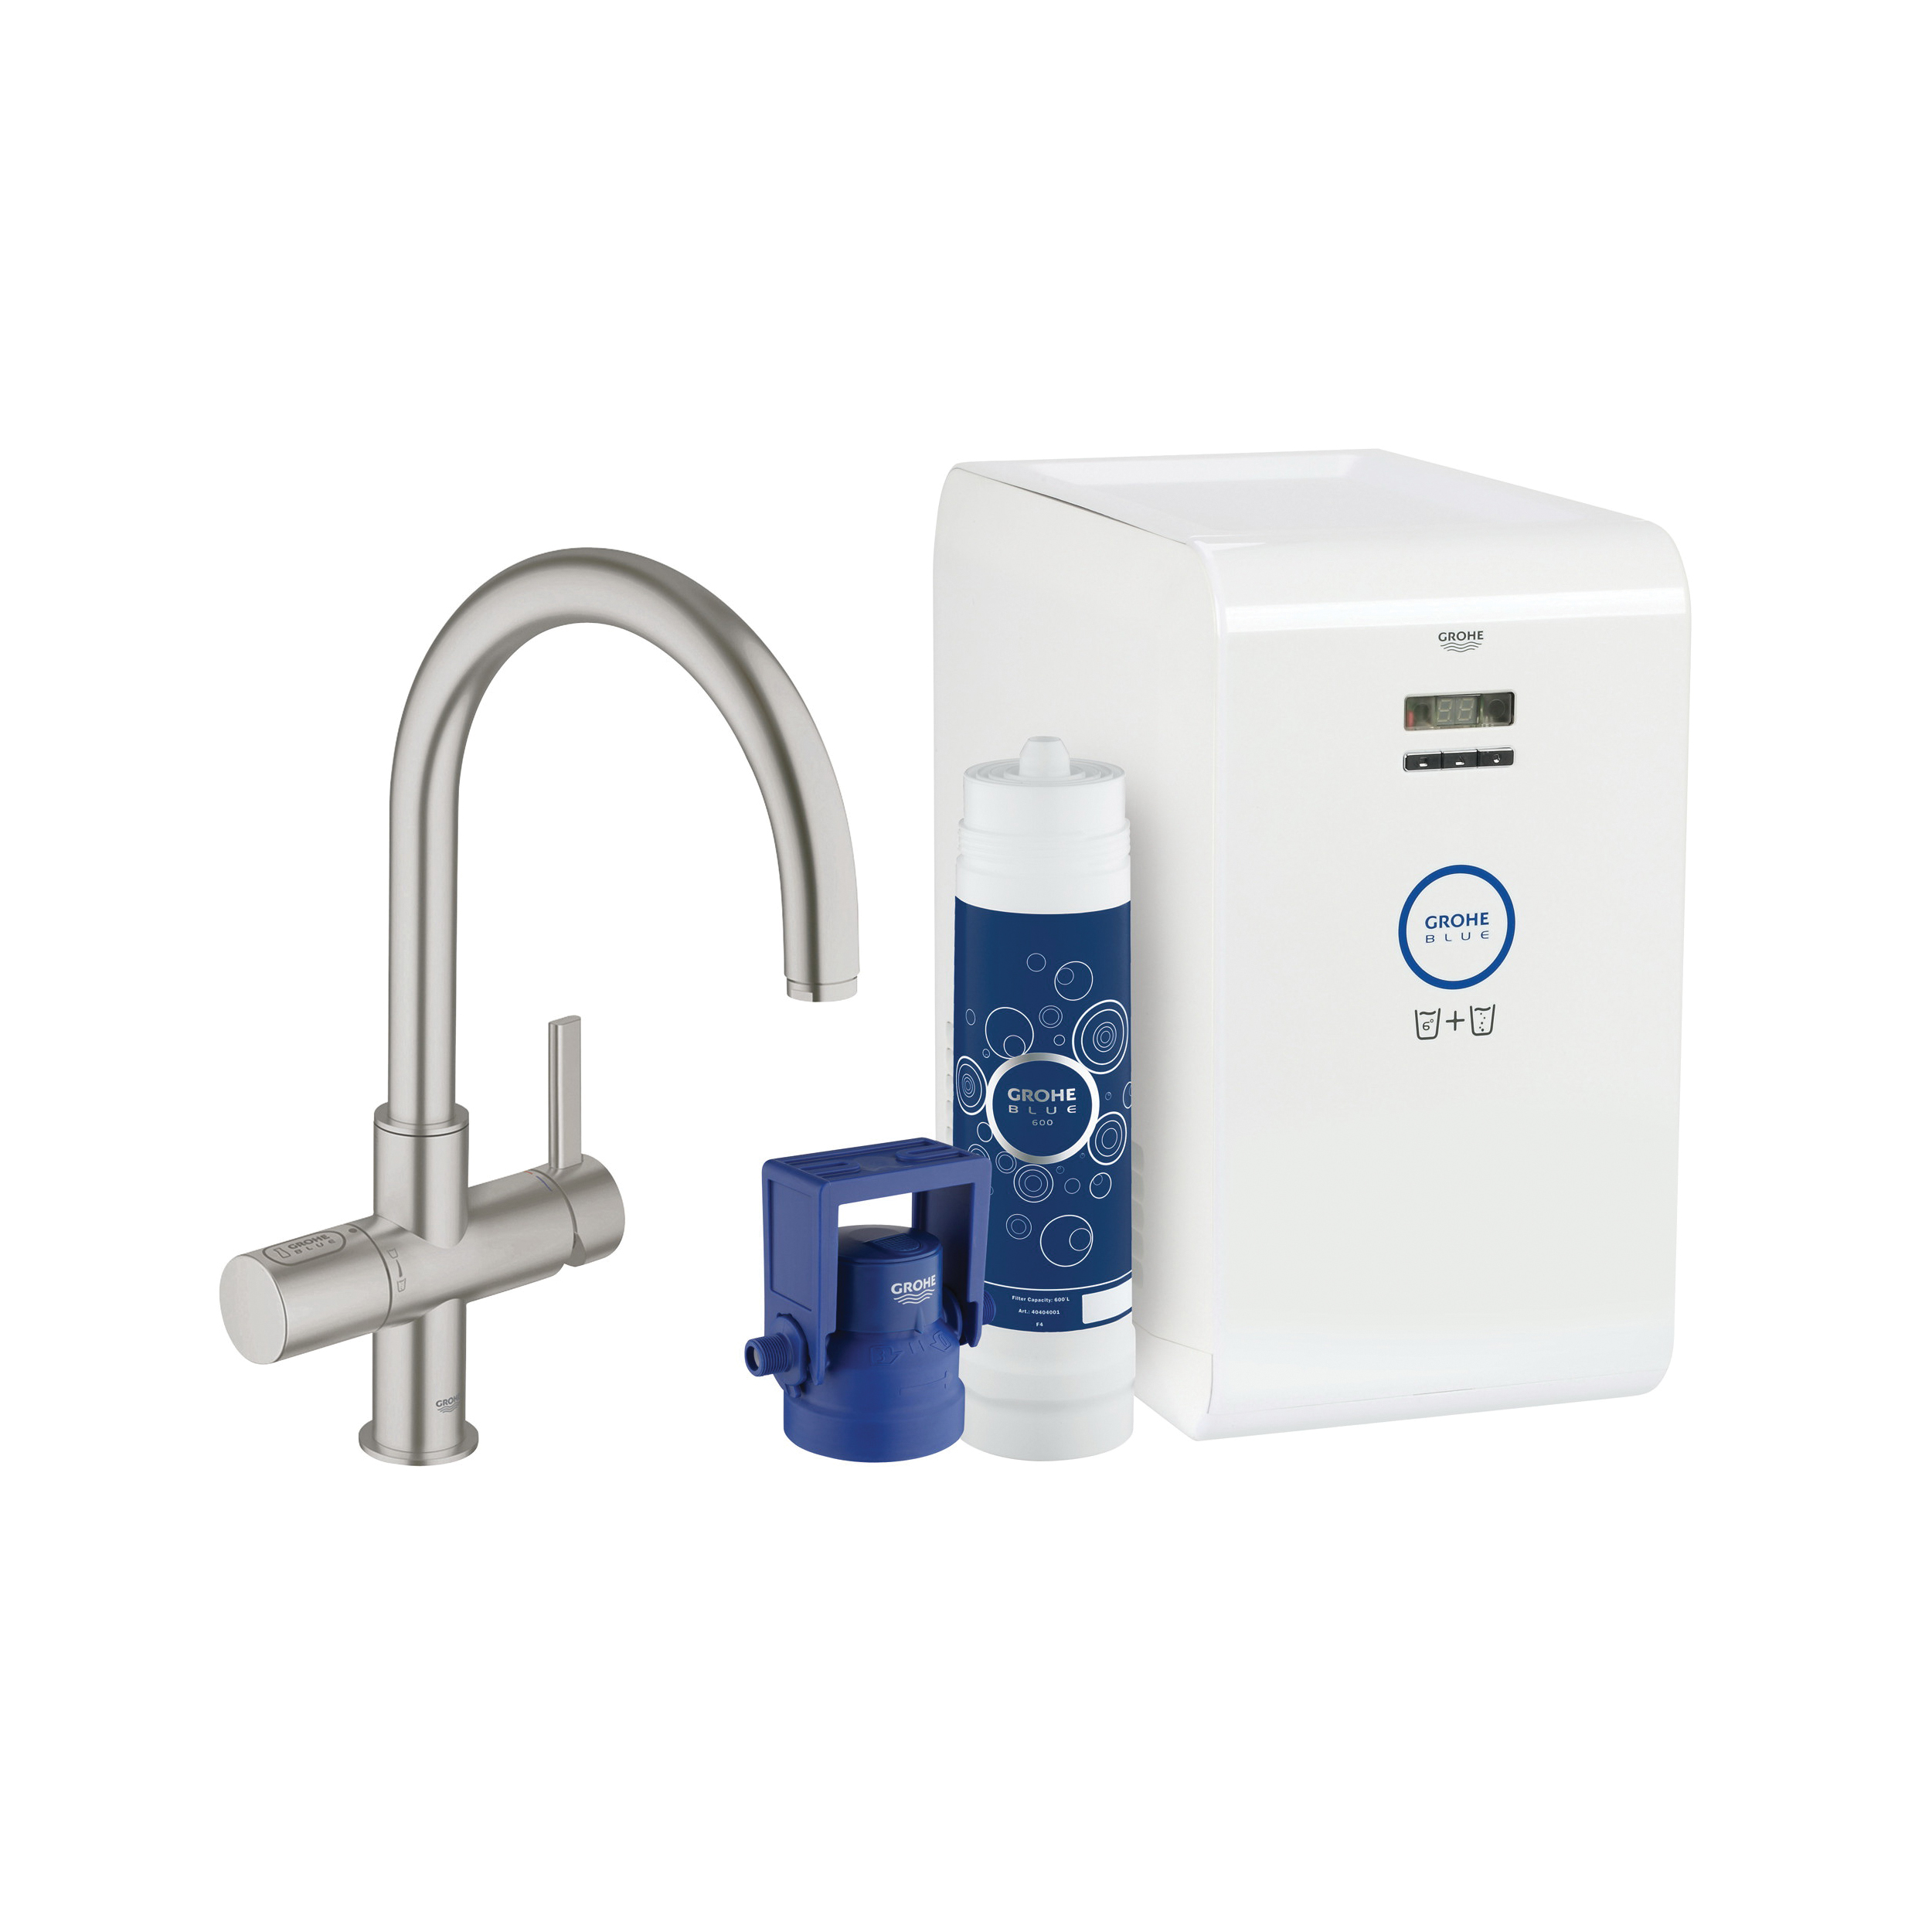 GROHE 31251DC1 GROHE Blue Sparkling Faucet and Water System, 1.75 gpm, 1 Handle, SuperSteel, Import, Residential